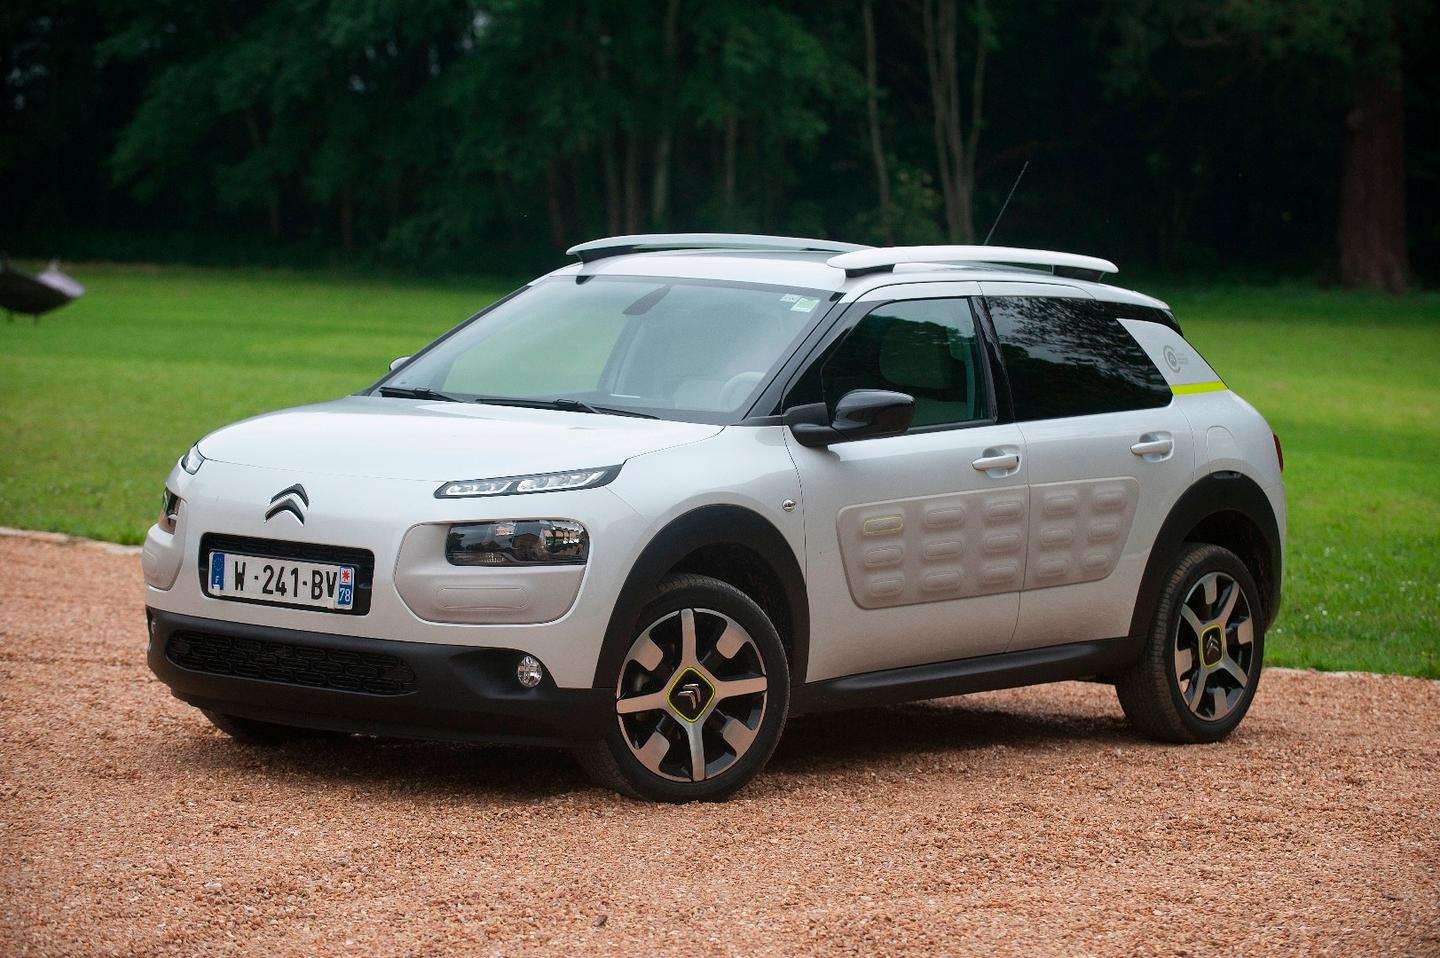 The Citroen Advanced Comfort Lab prototype vehicle is based on a C4 Cactus